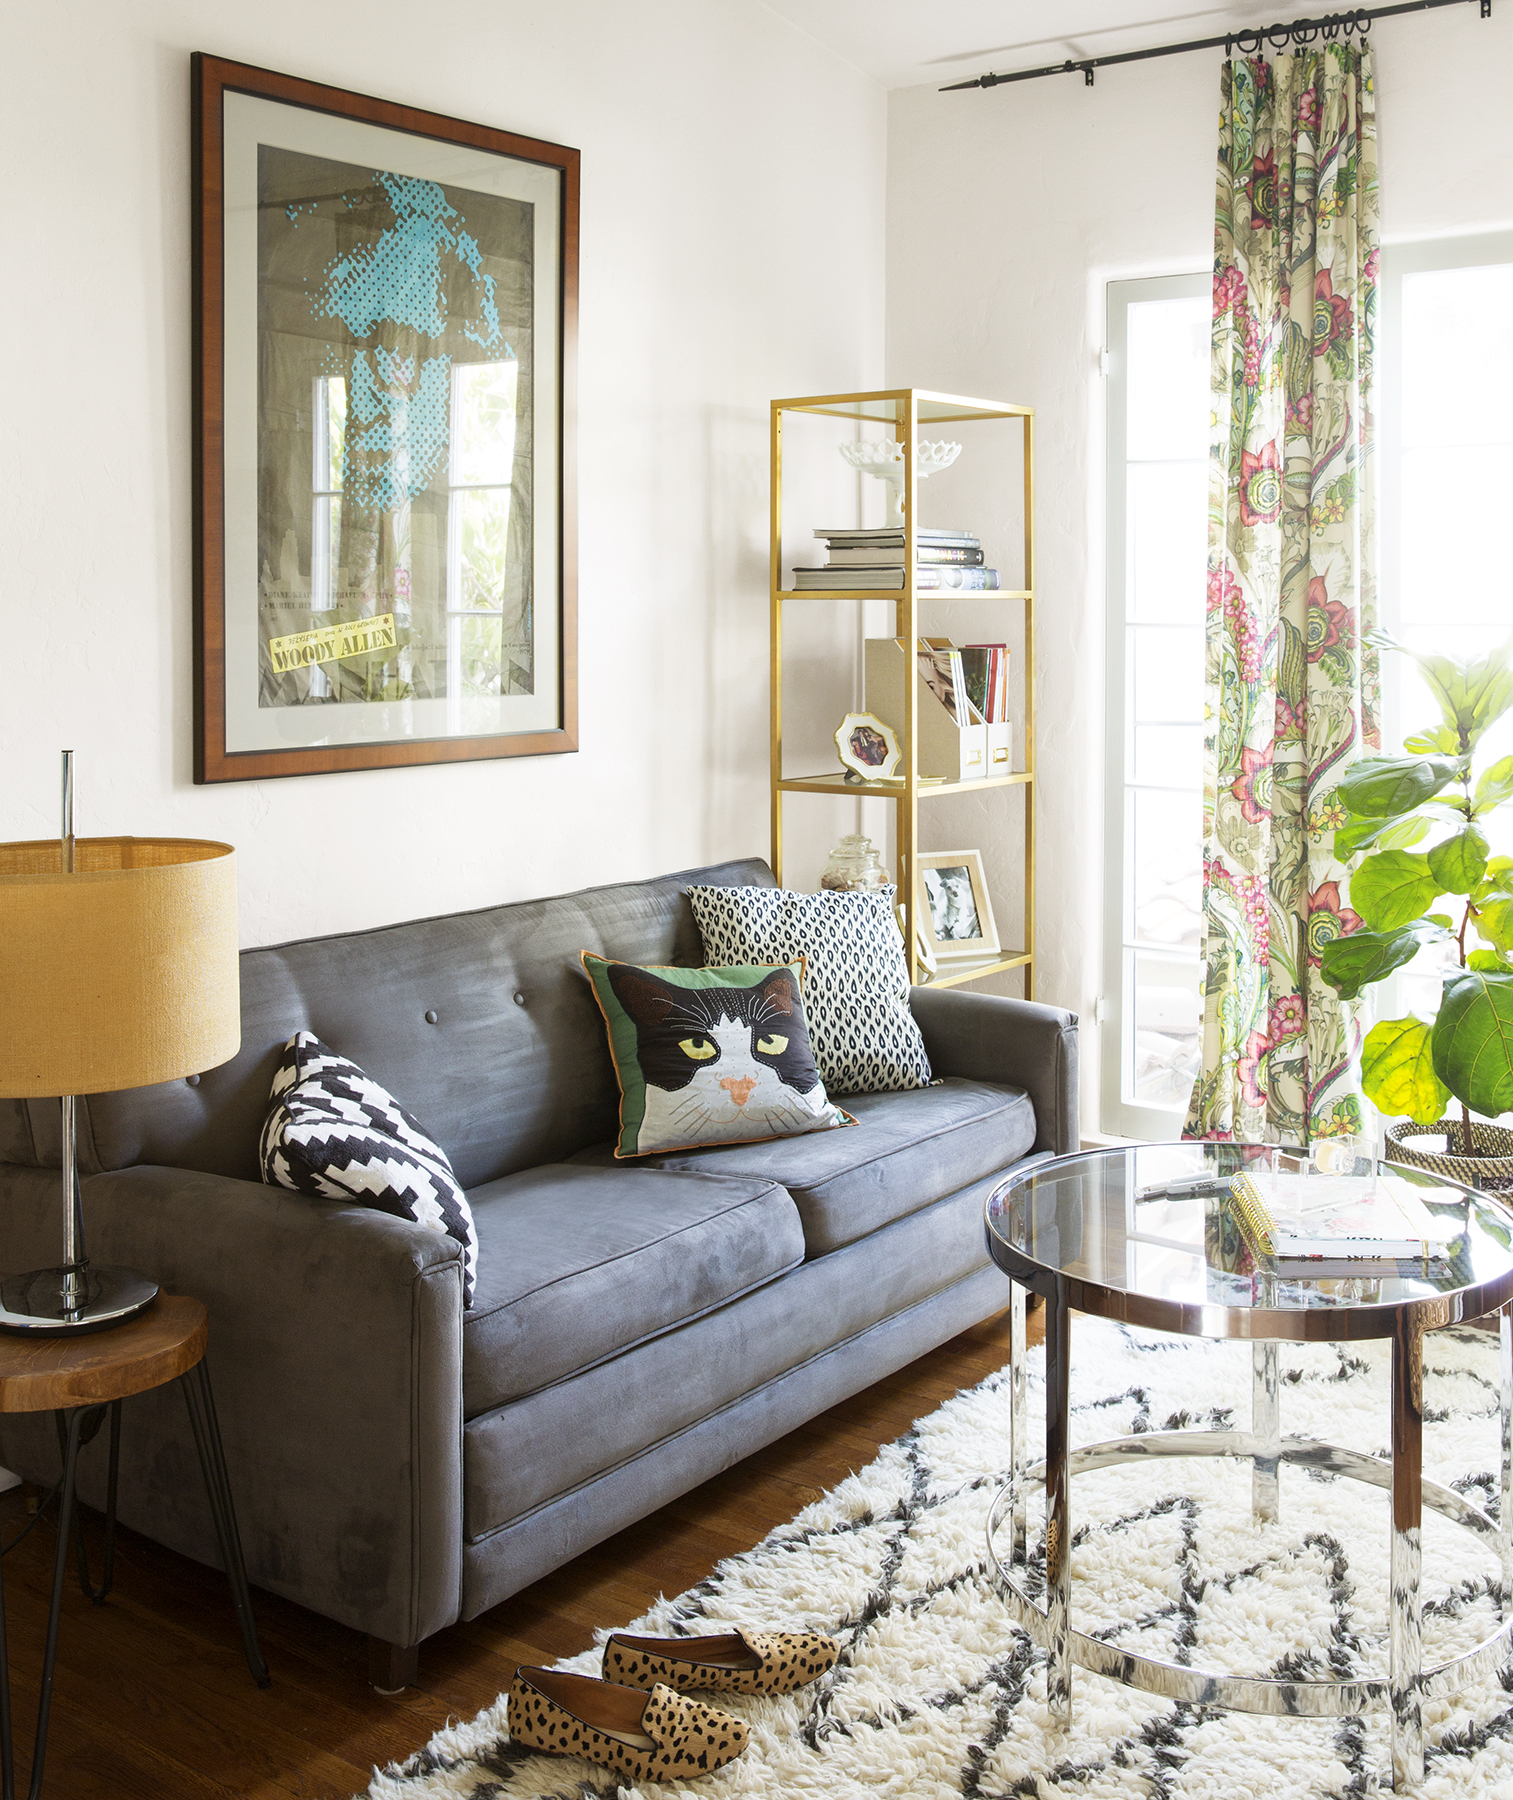 Benjamin Moore Colors For Your Living Room Decor: 8 Foolproof Paint Colors For Your Living Room